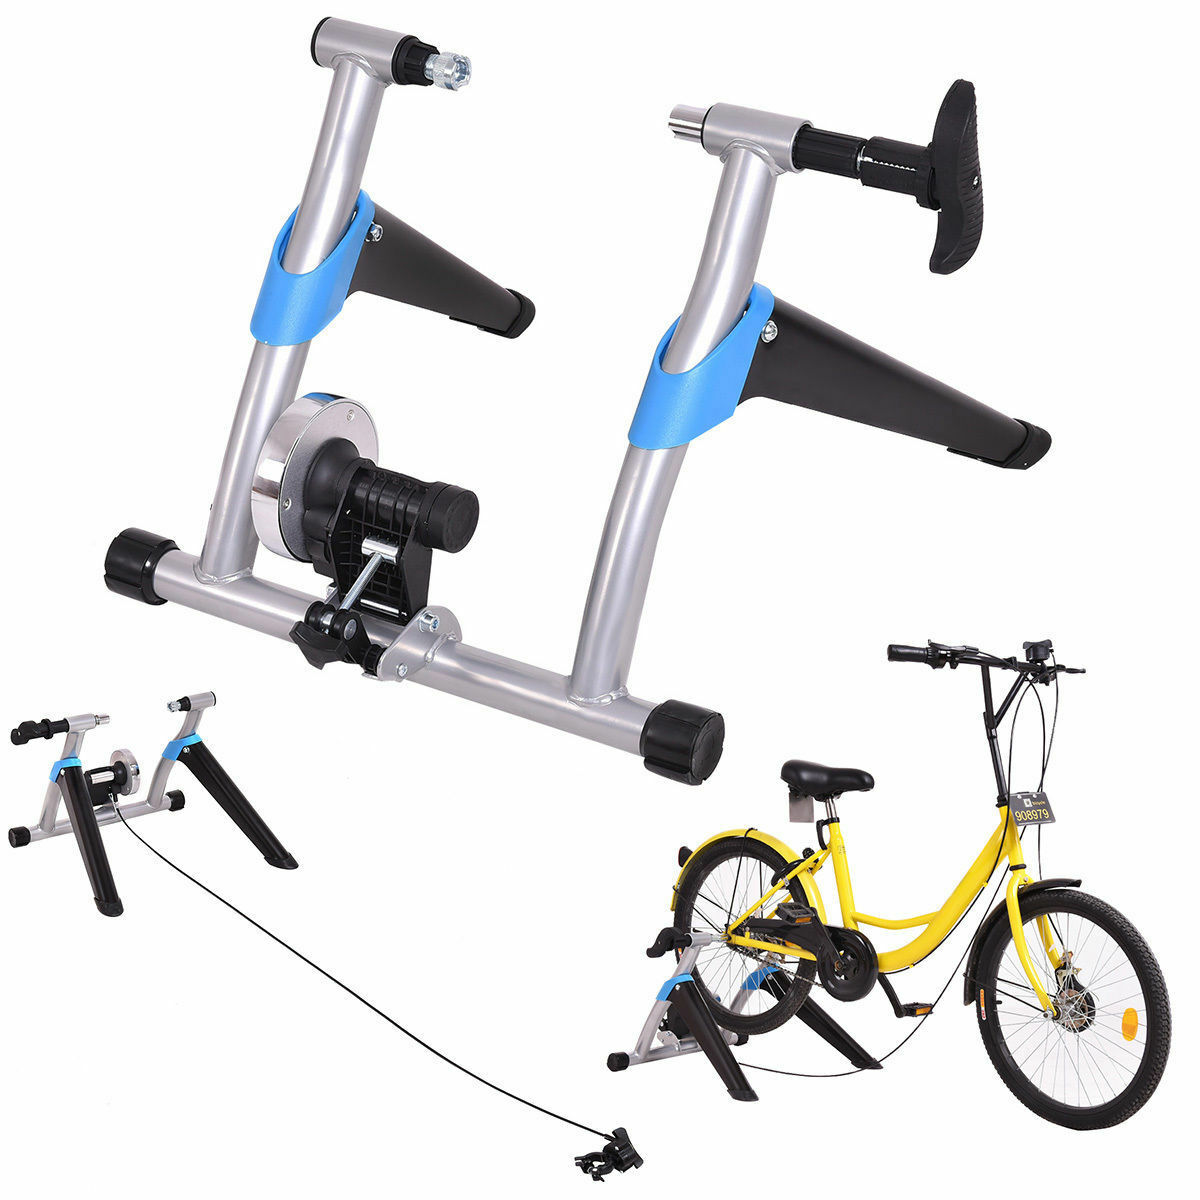 Portable Folding Stationary Exercise Bicycle Trainer Bike Stand 8 Level Magnetic